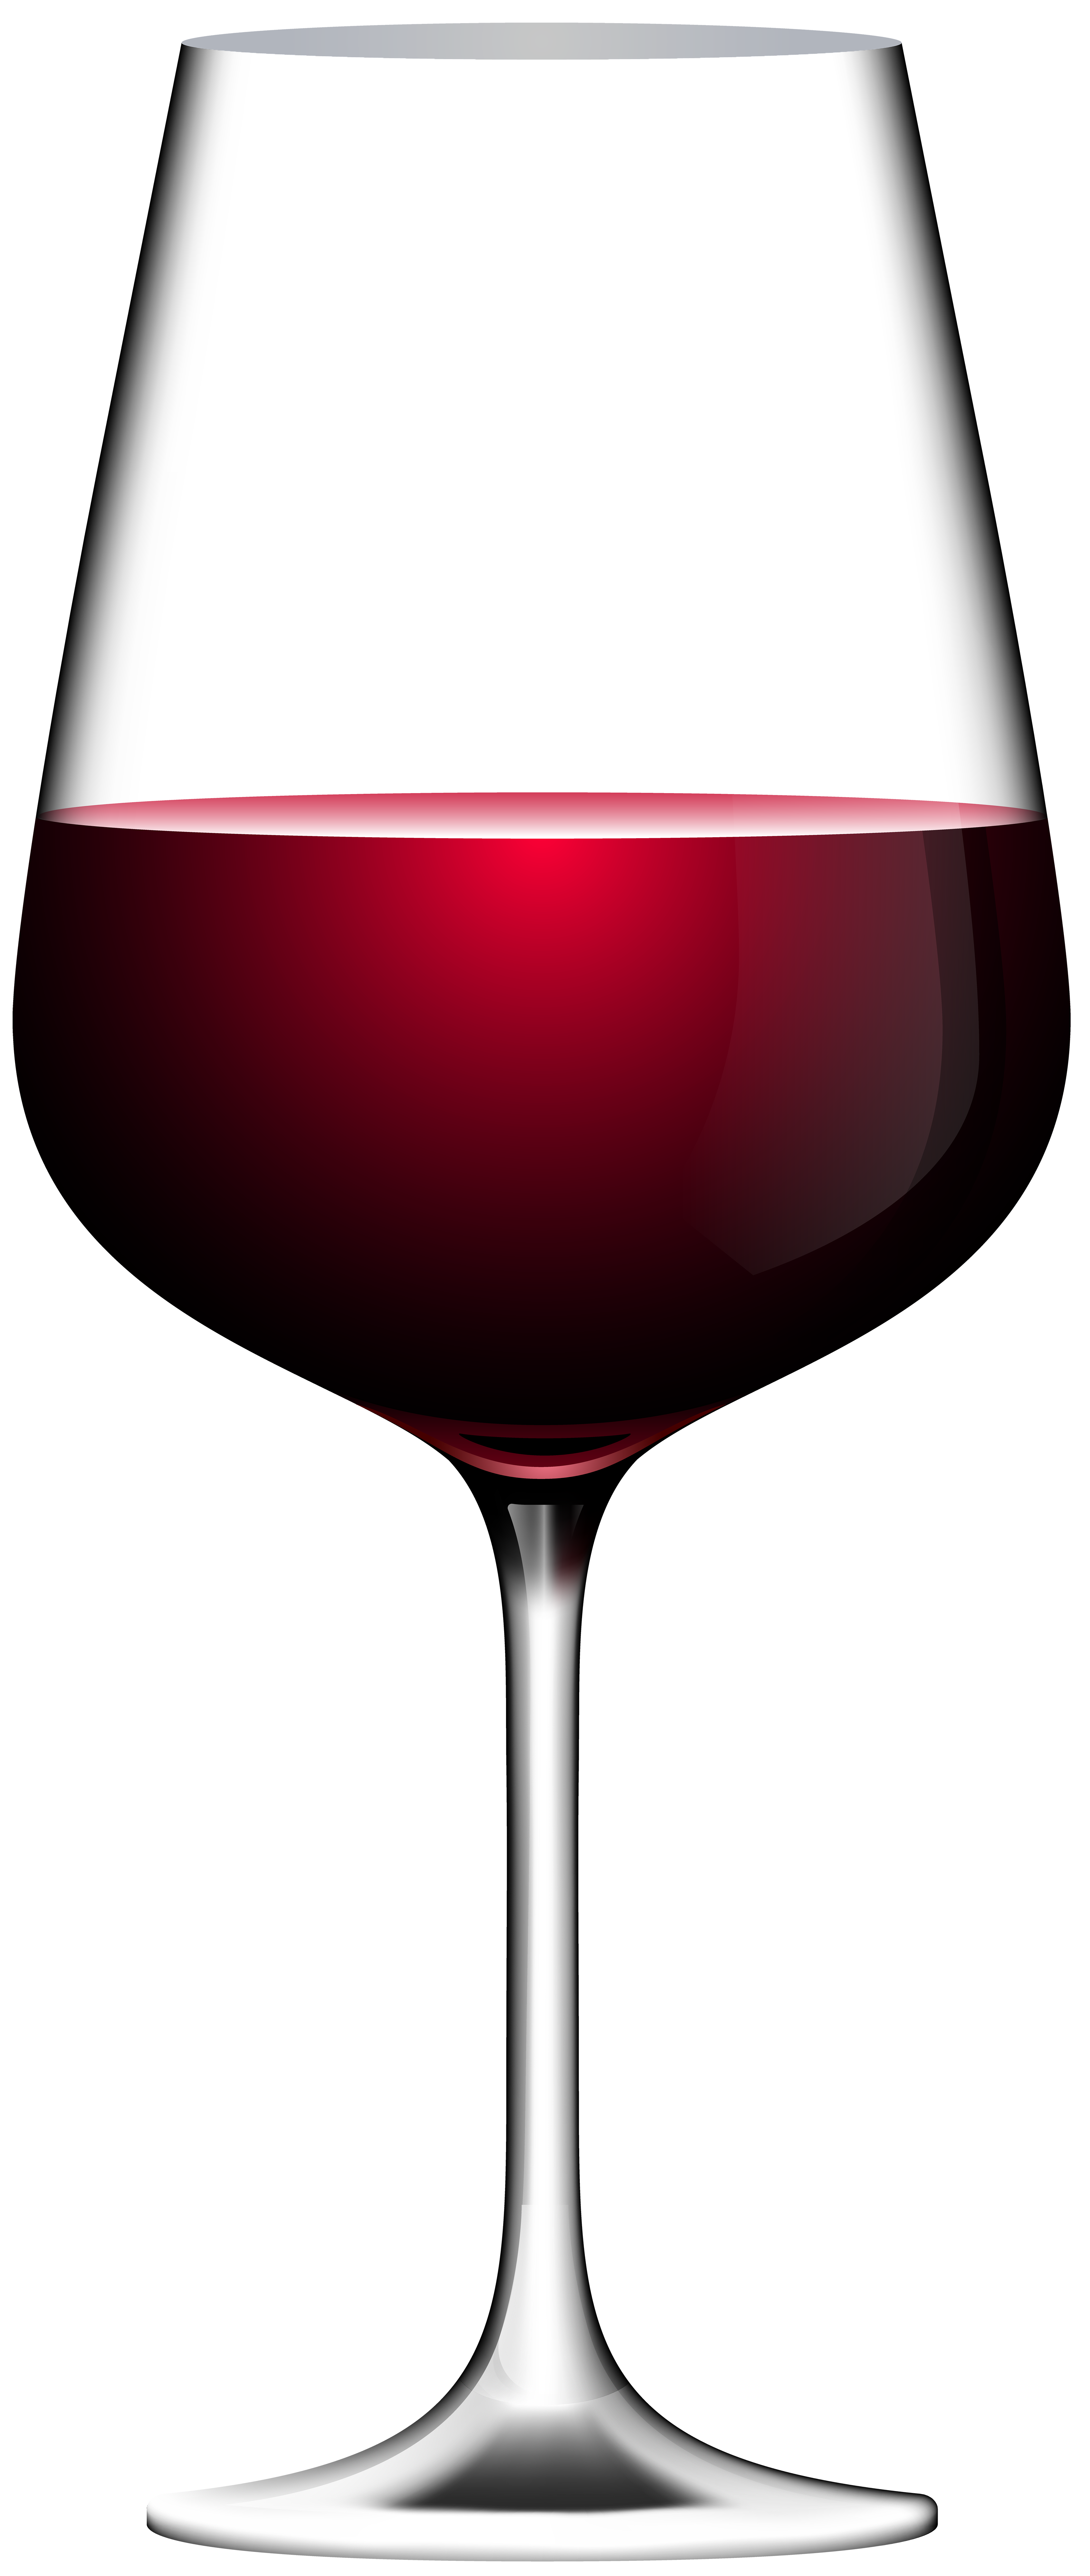 Halloween clipart wine. Red glass transparent clip